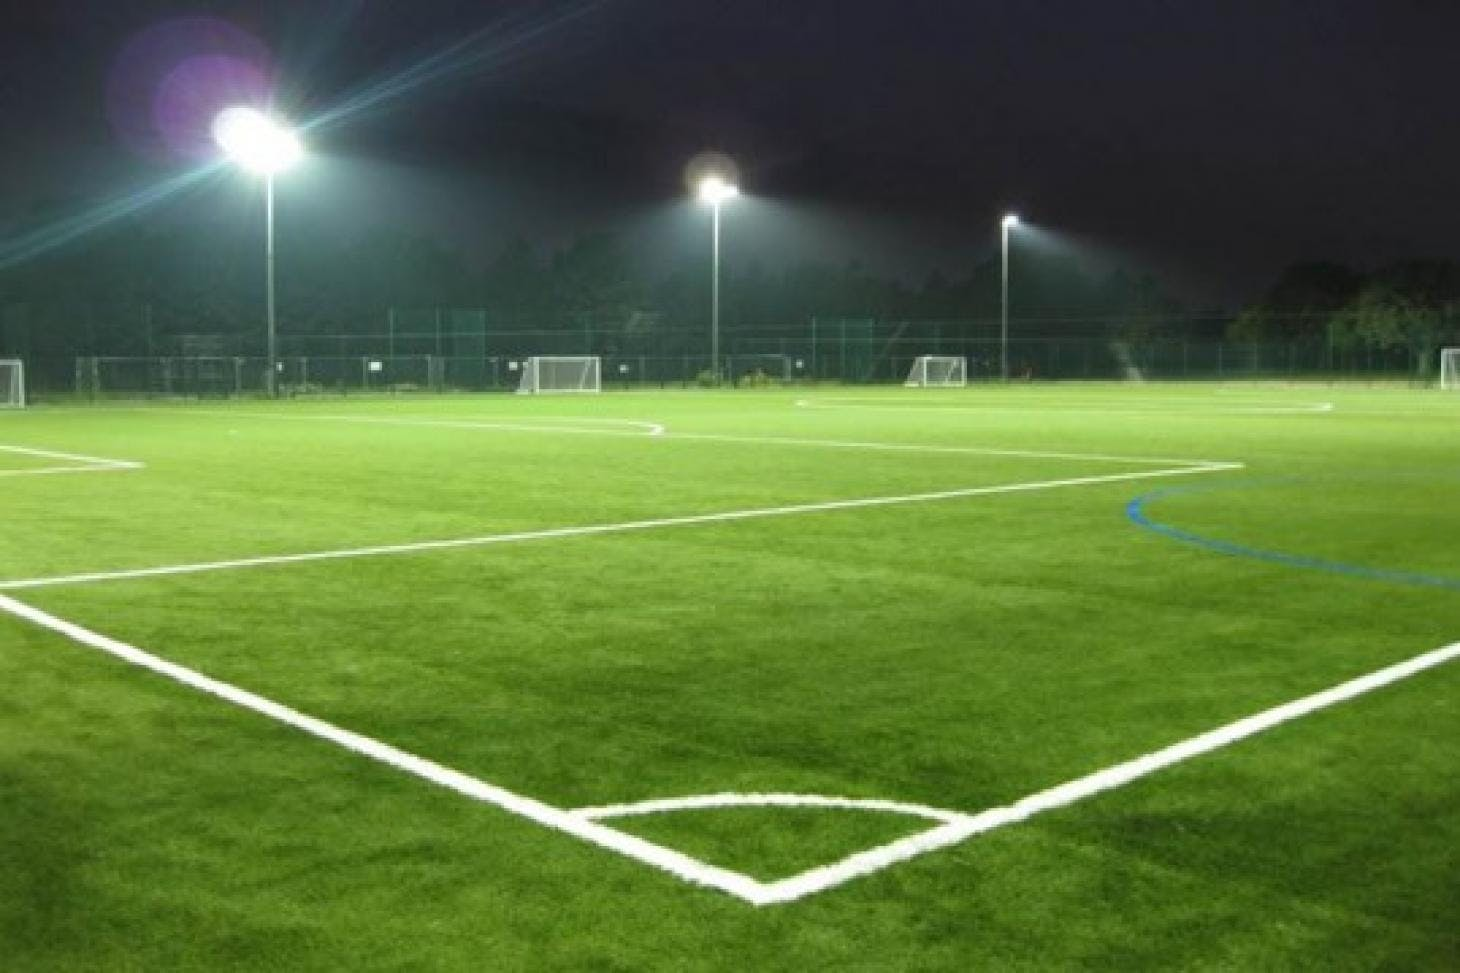 The Priory Link Leisure Centre 5 a side | 3G Astroturf football pitch